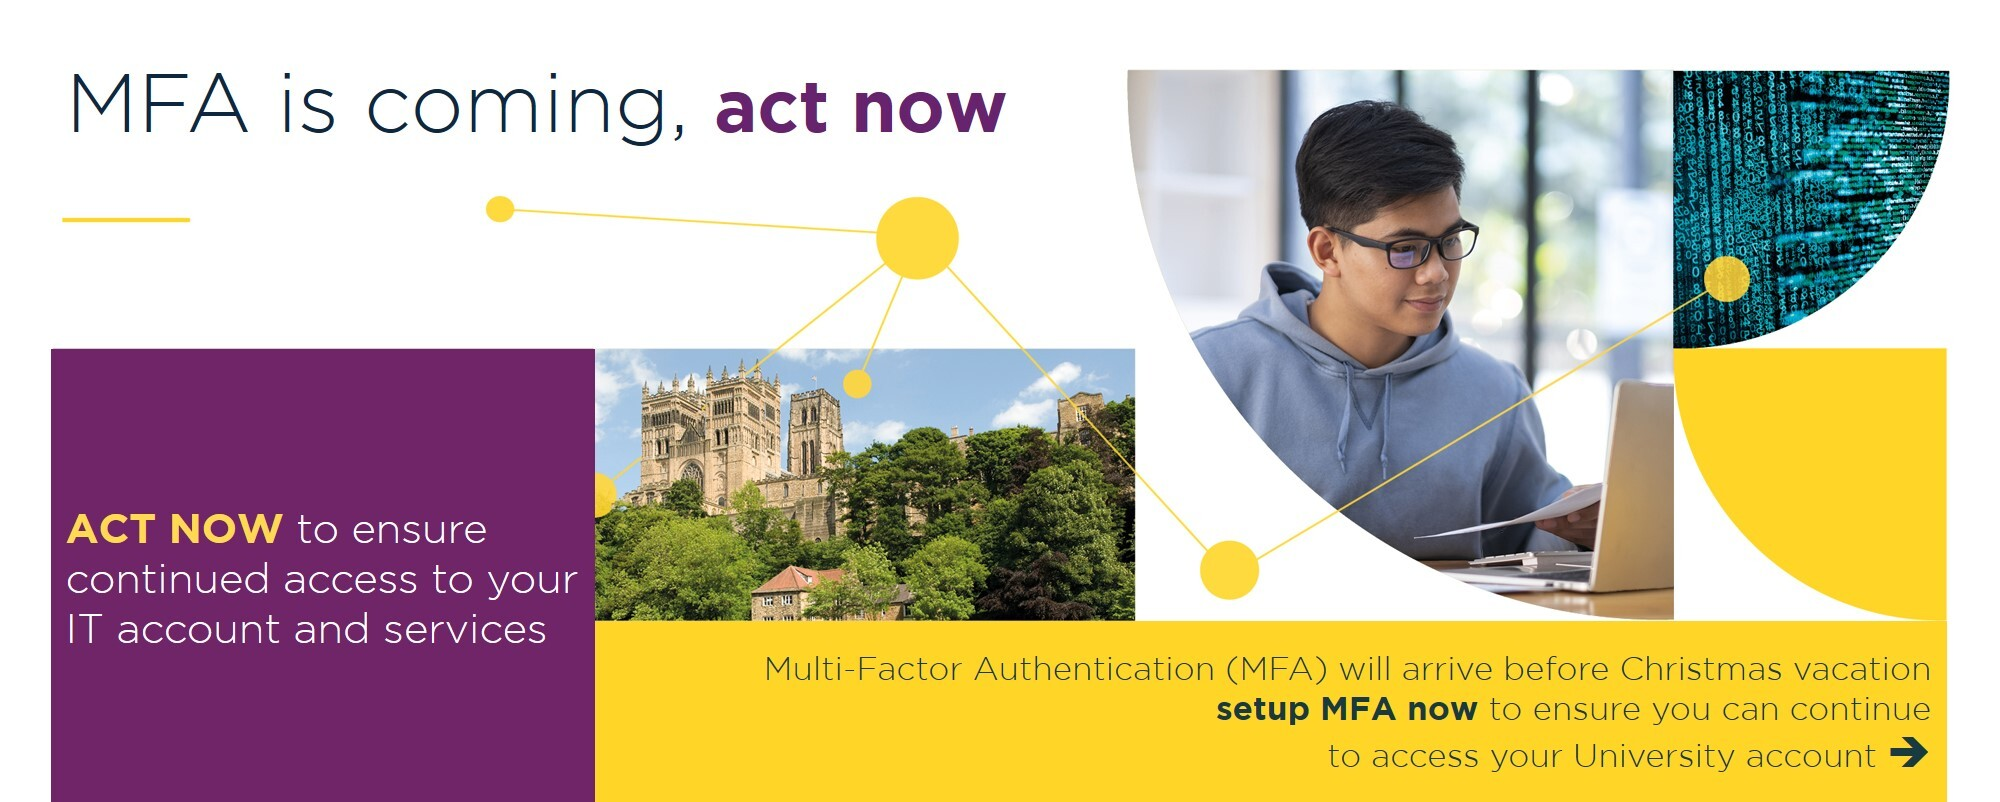 MFA is coming, act now